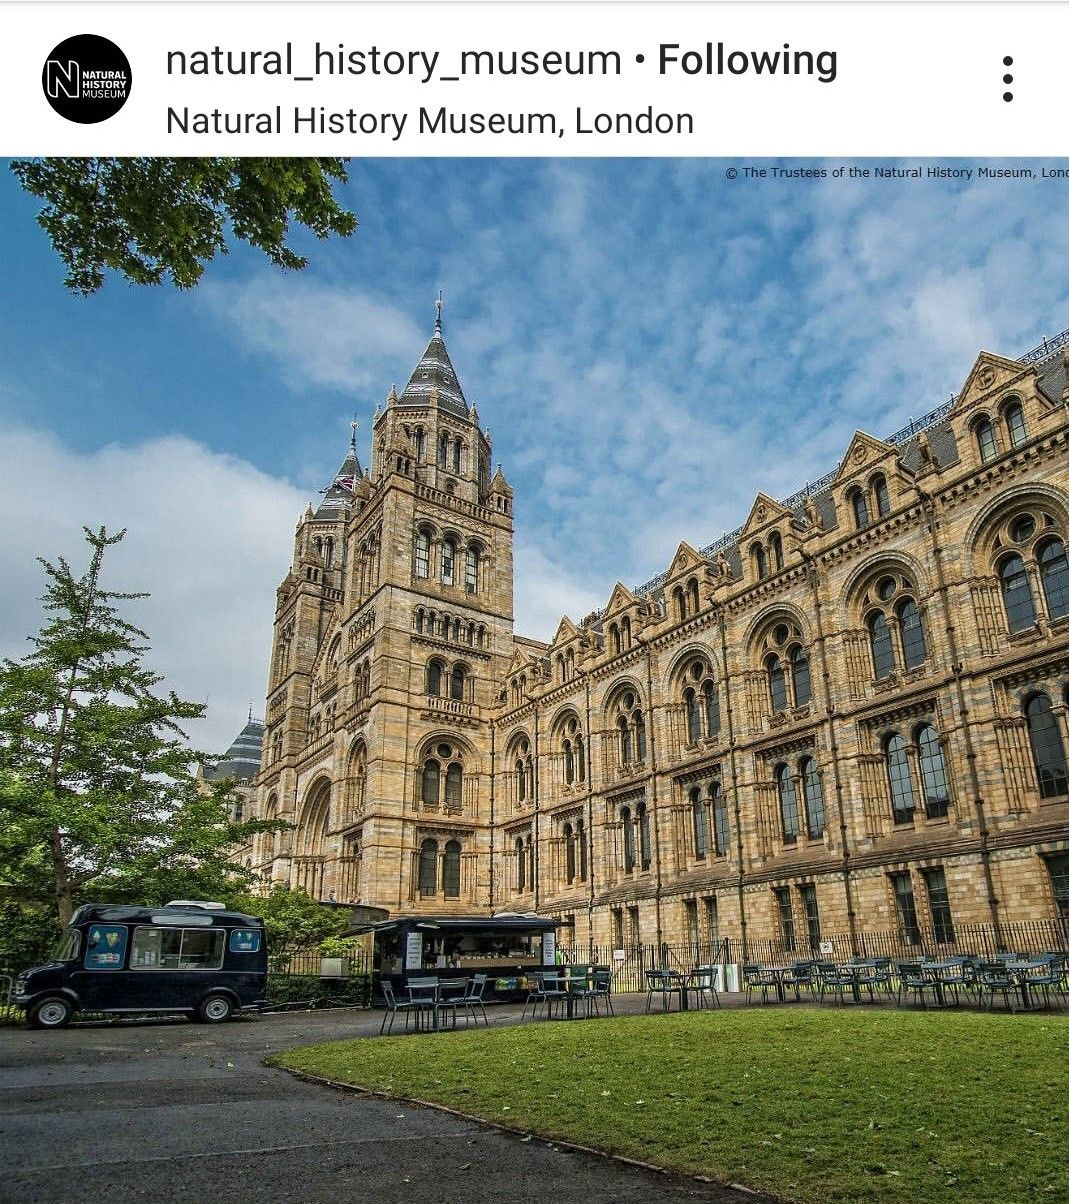 The outside of the Natural history Museum is as gorgeous as the inside.